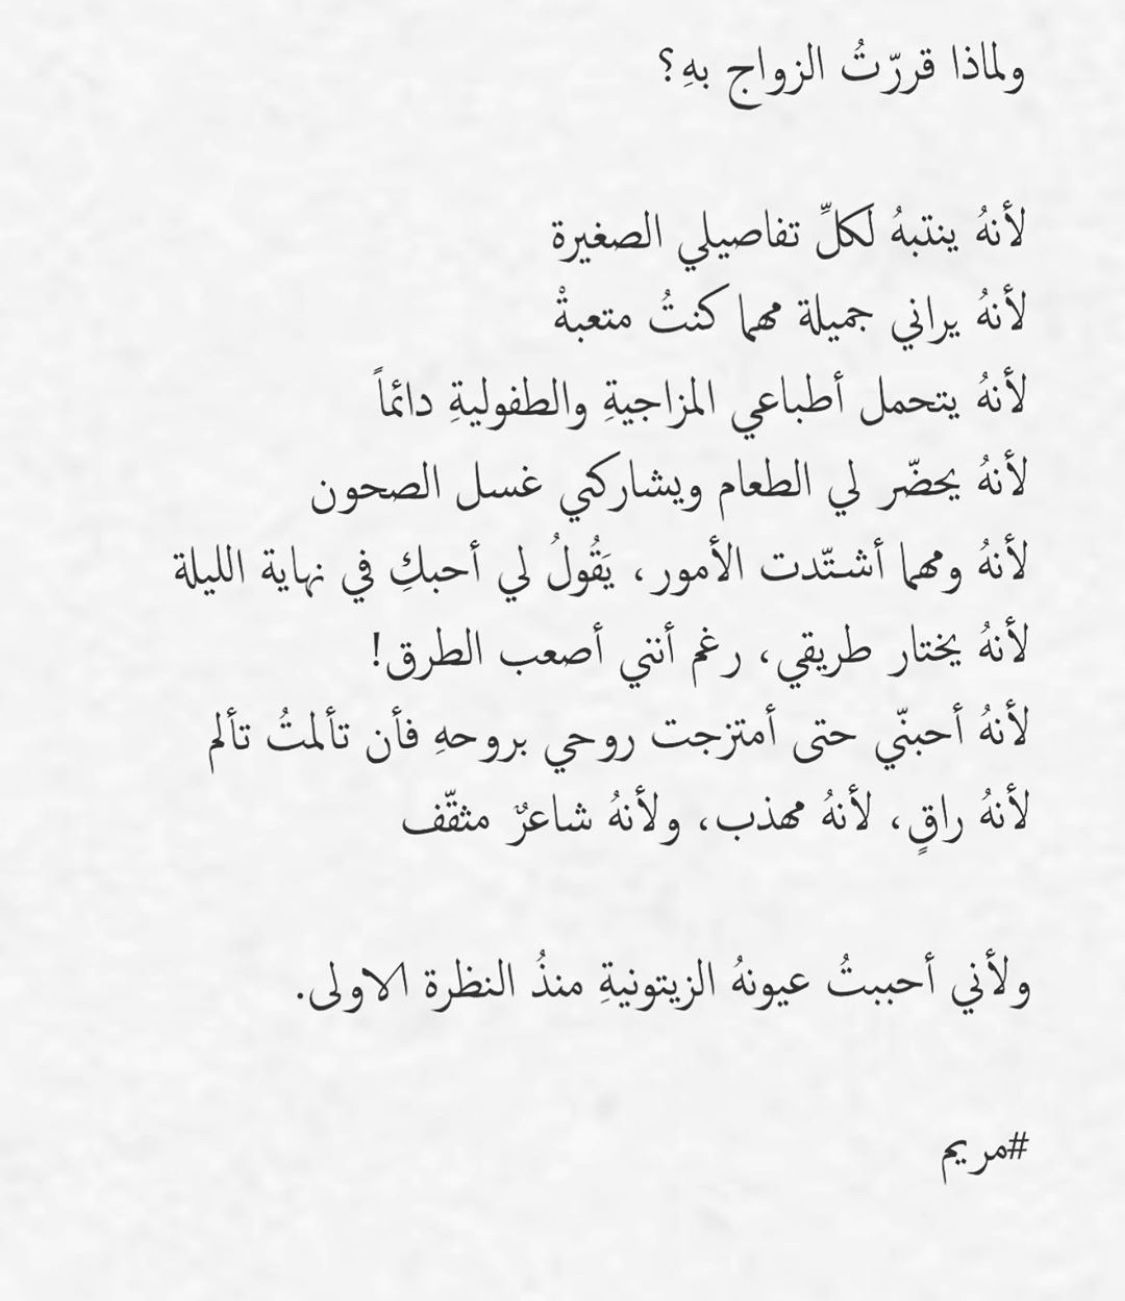 Pin By Maream On Arabic عربي Arabic Love Quotes Photo Quotes Great Quotes